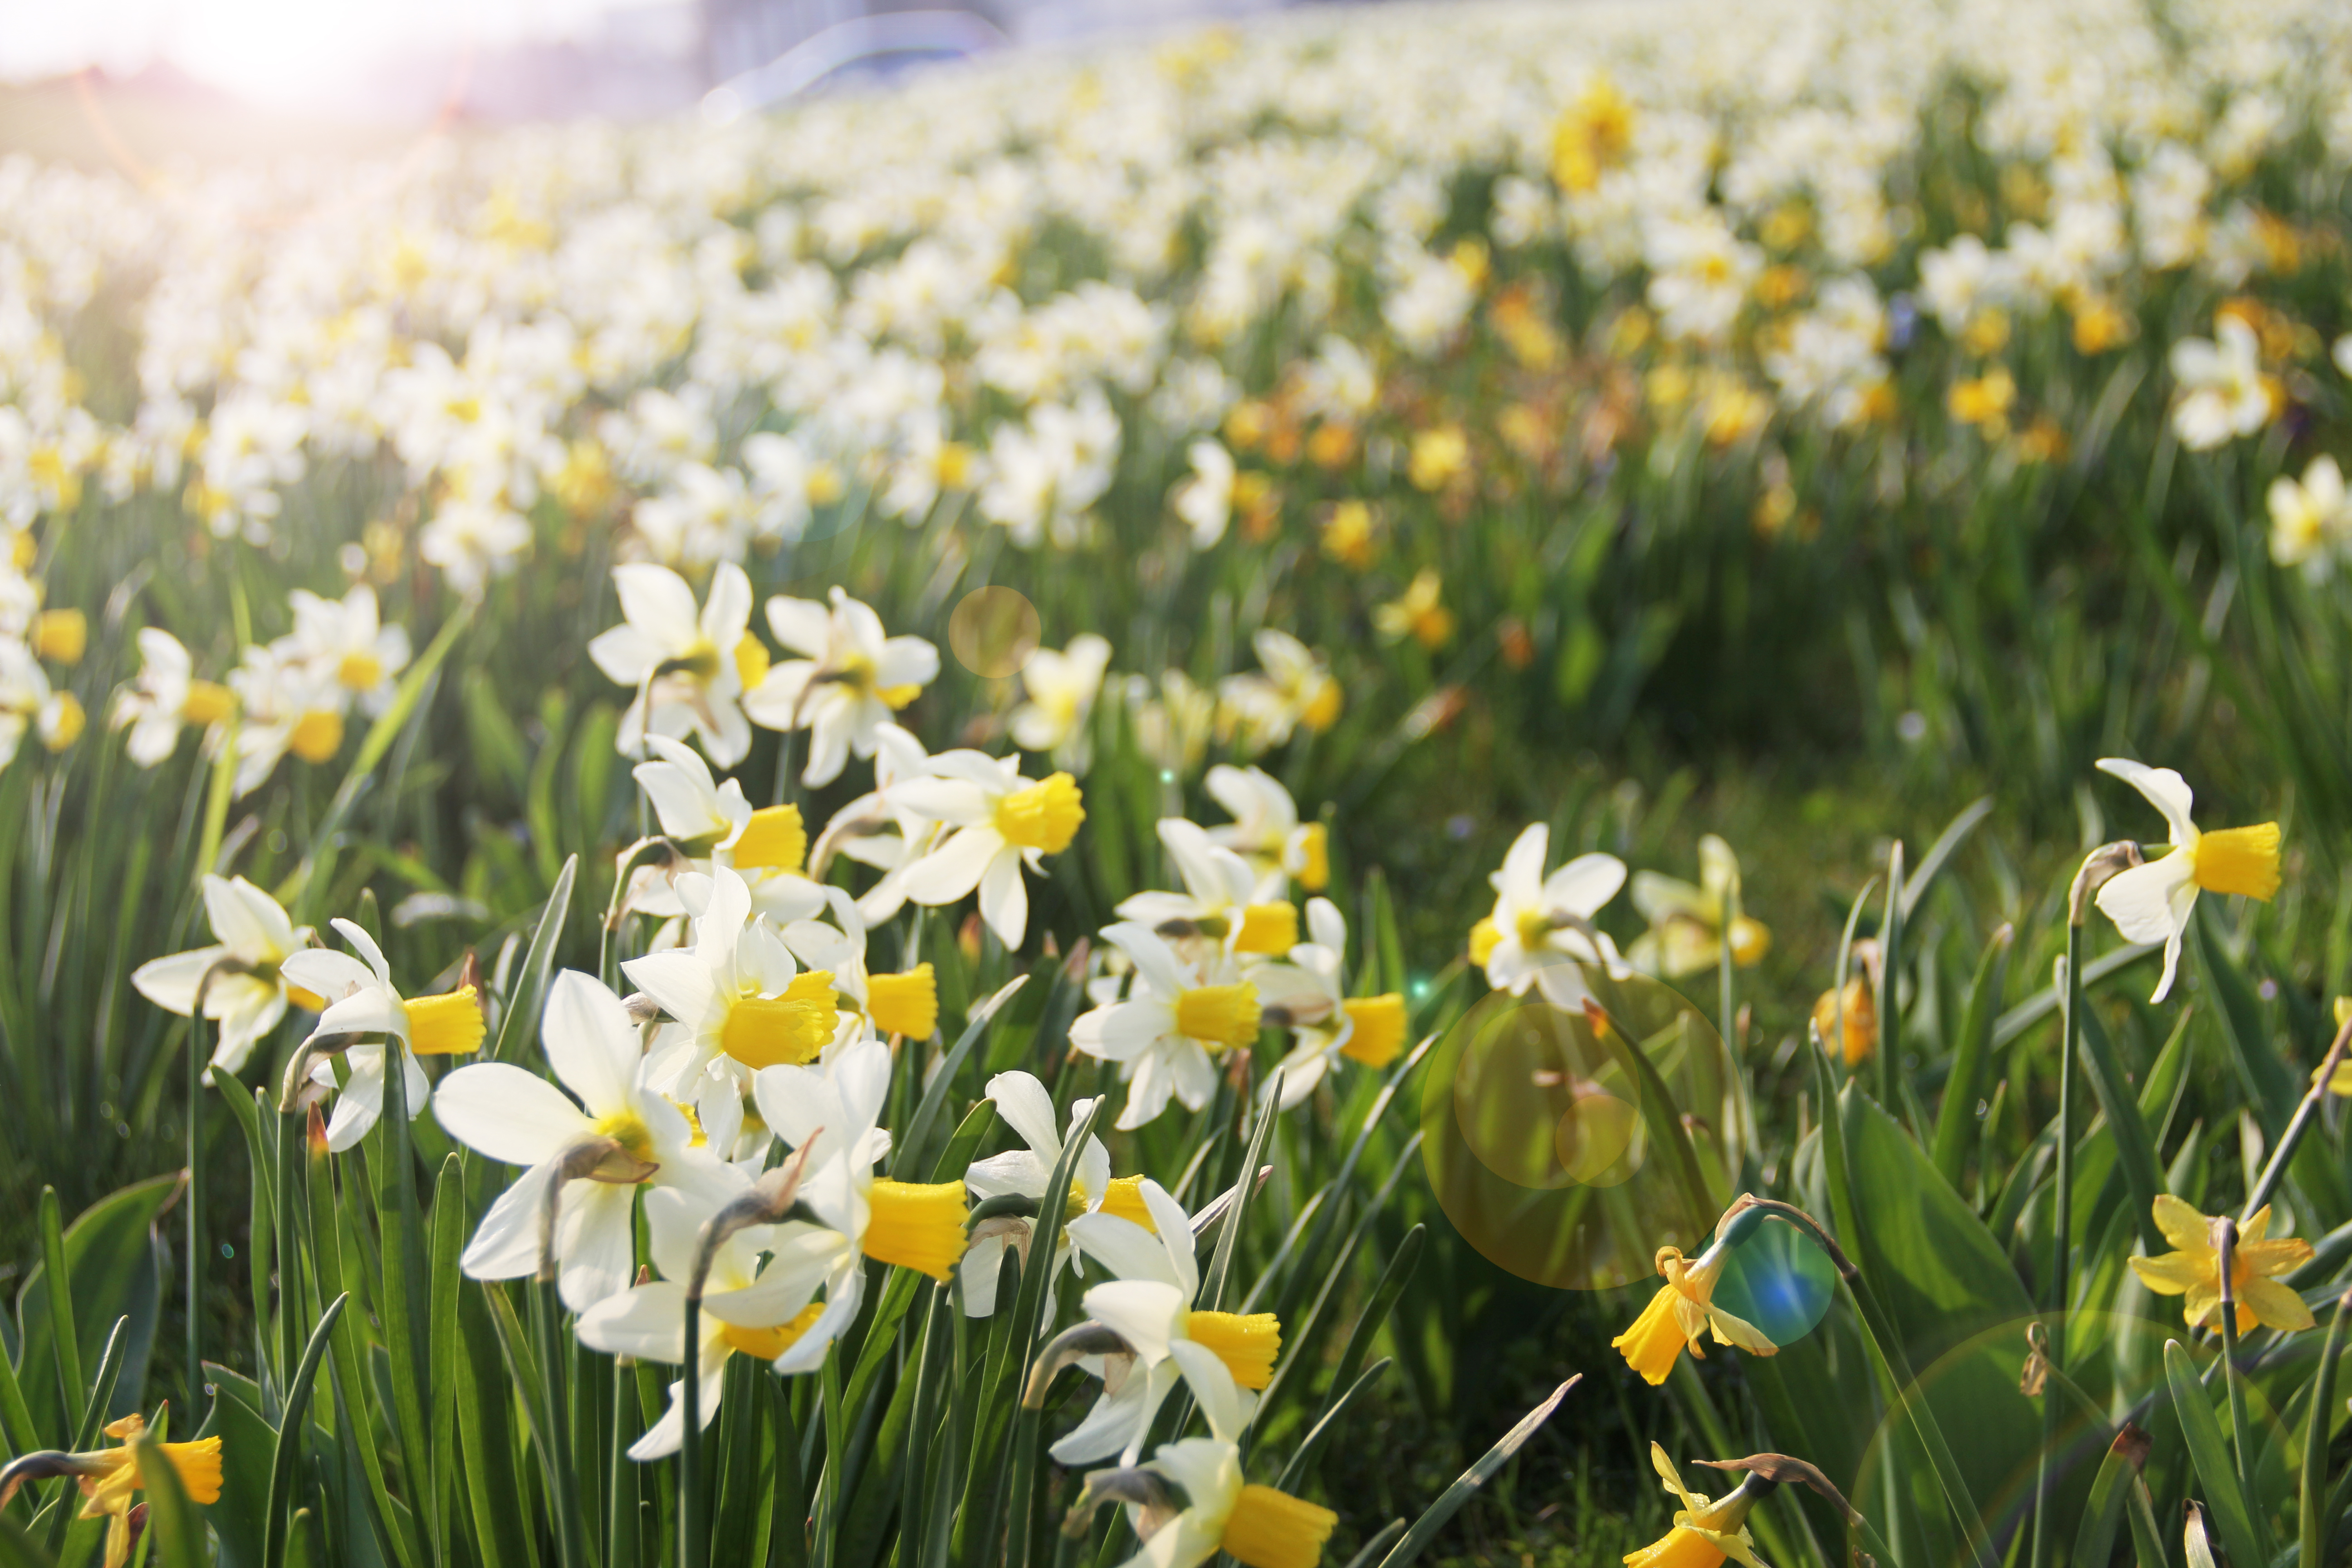 daffodils, Beauty, Meadow, Wild, Vibrant, HQ Photo